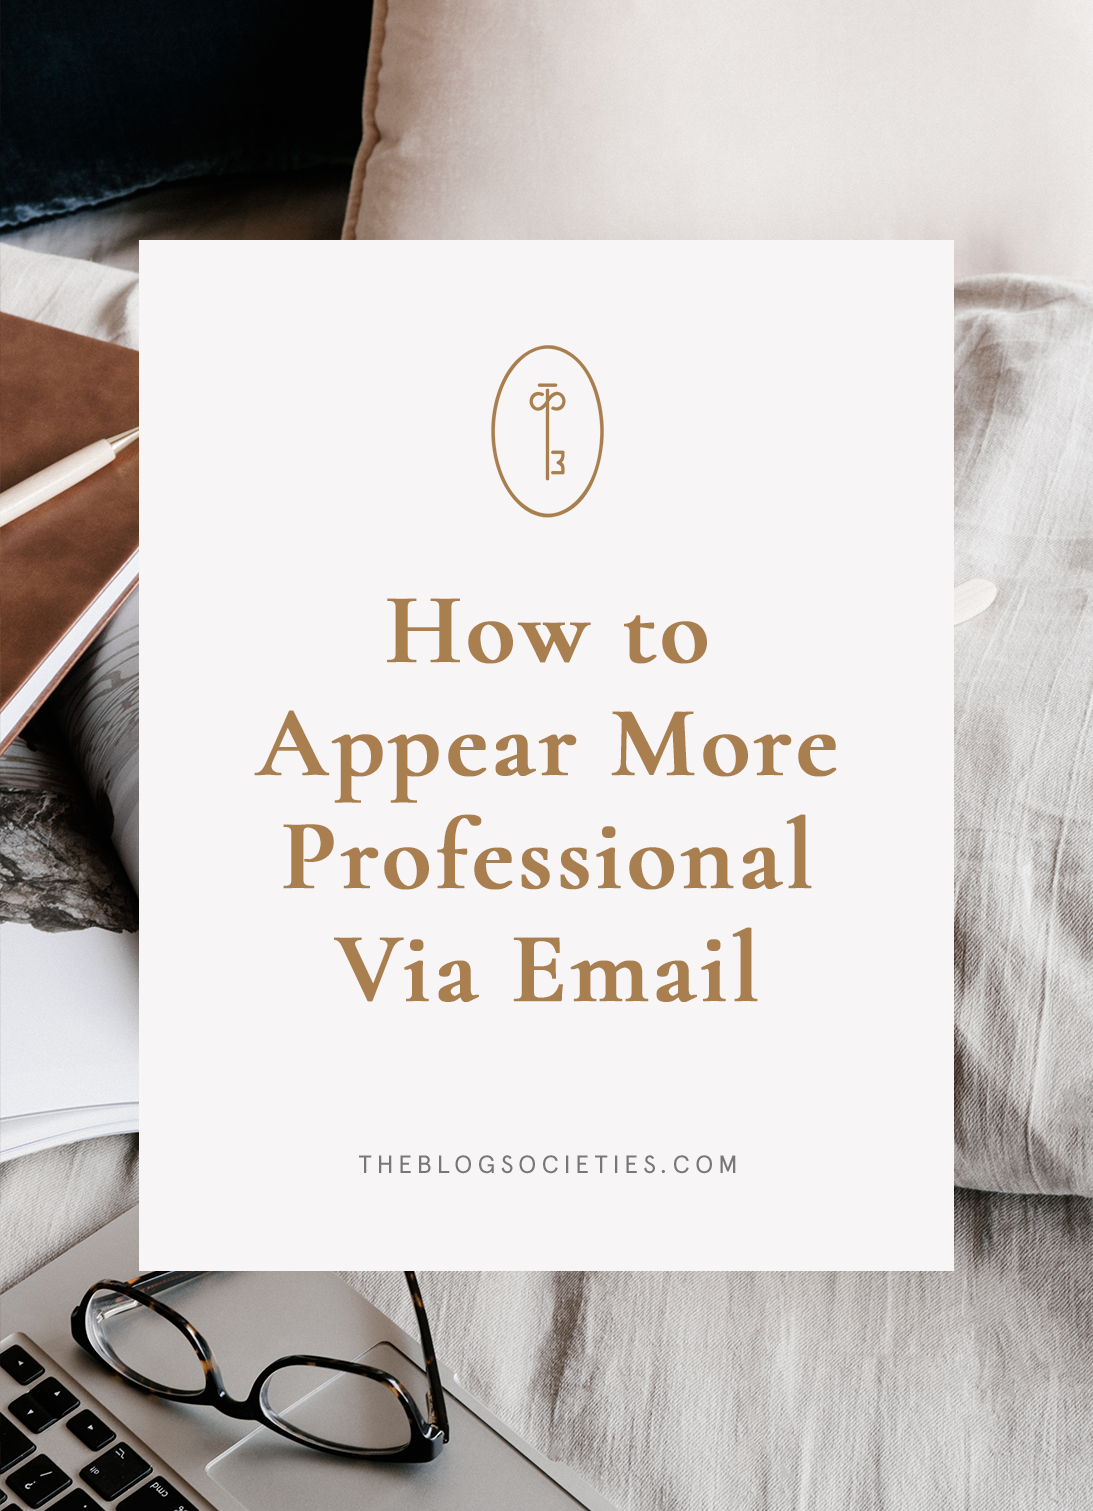 How to Appear More Professional Via Email   The Blog Societies